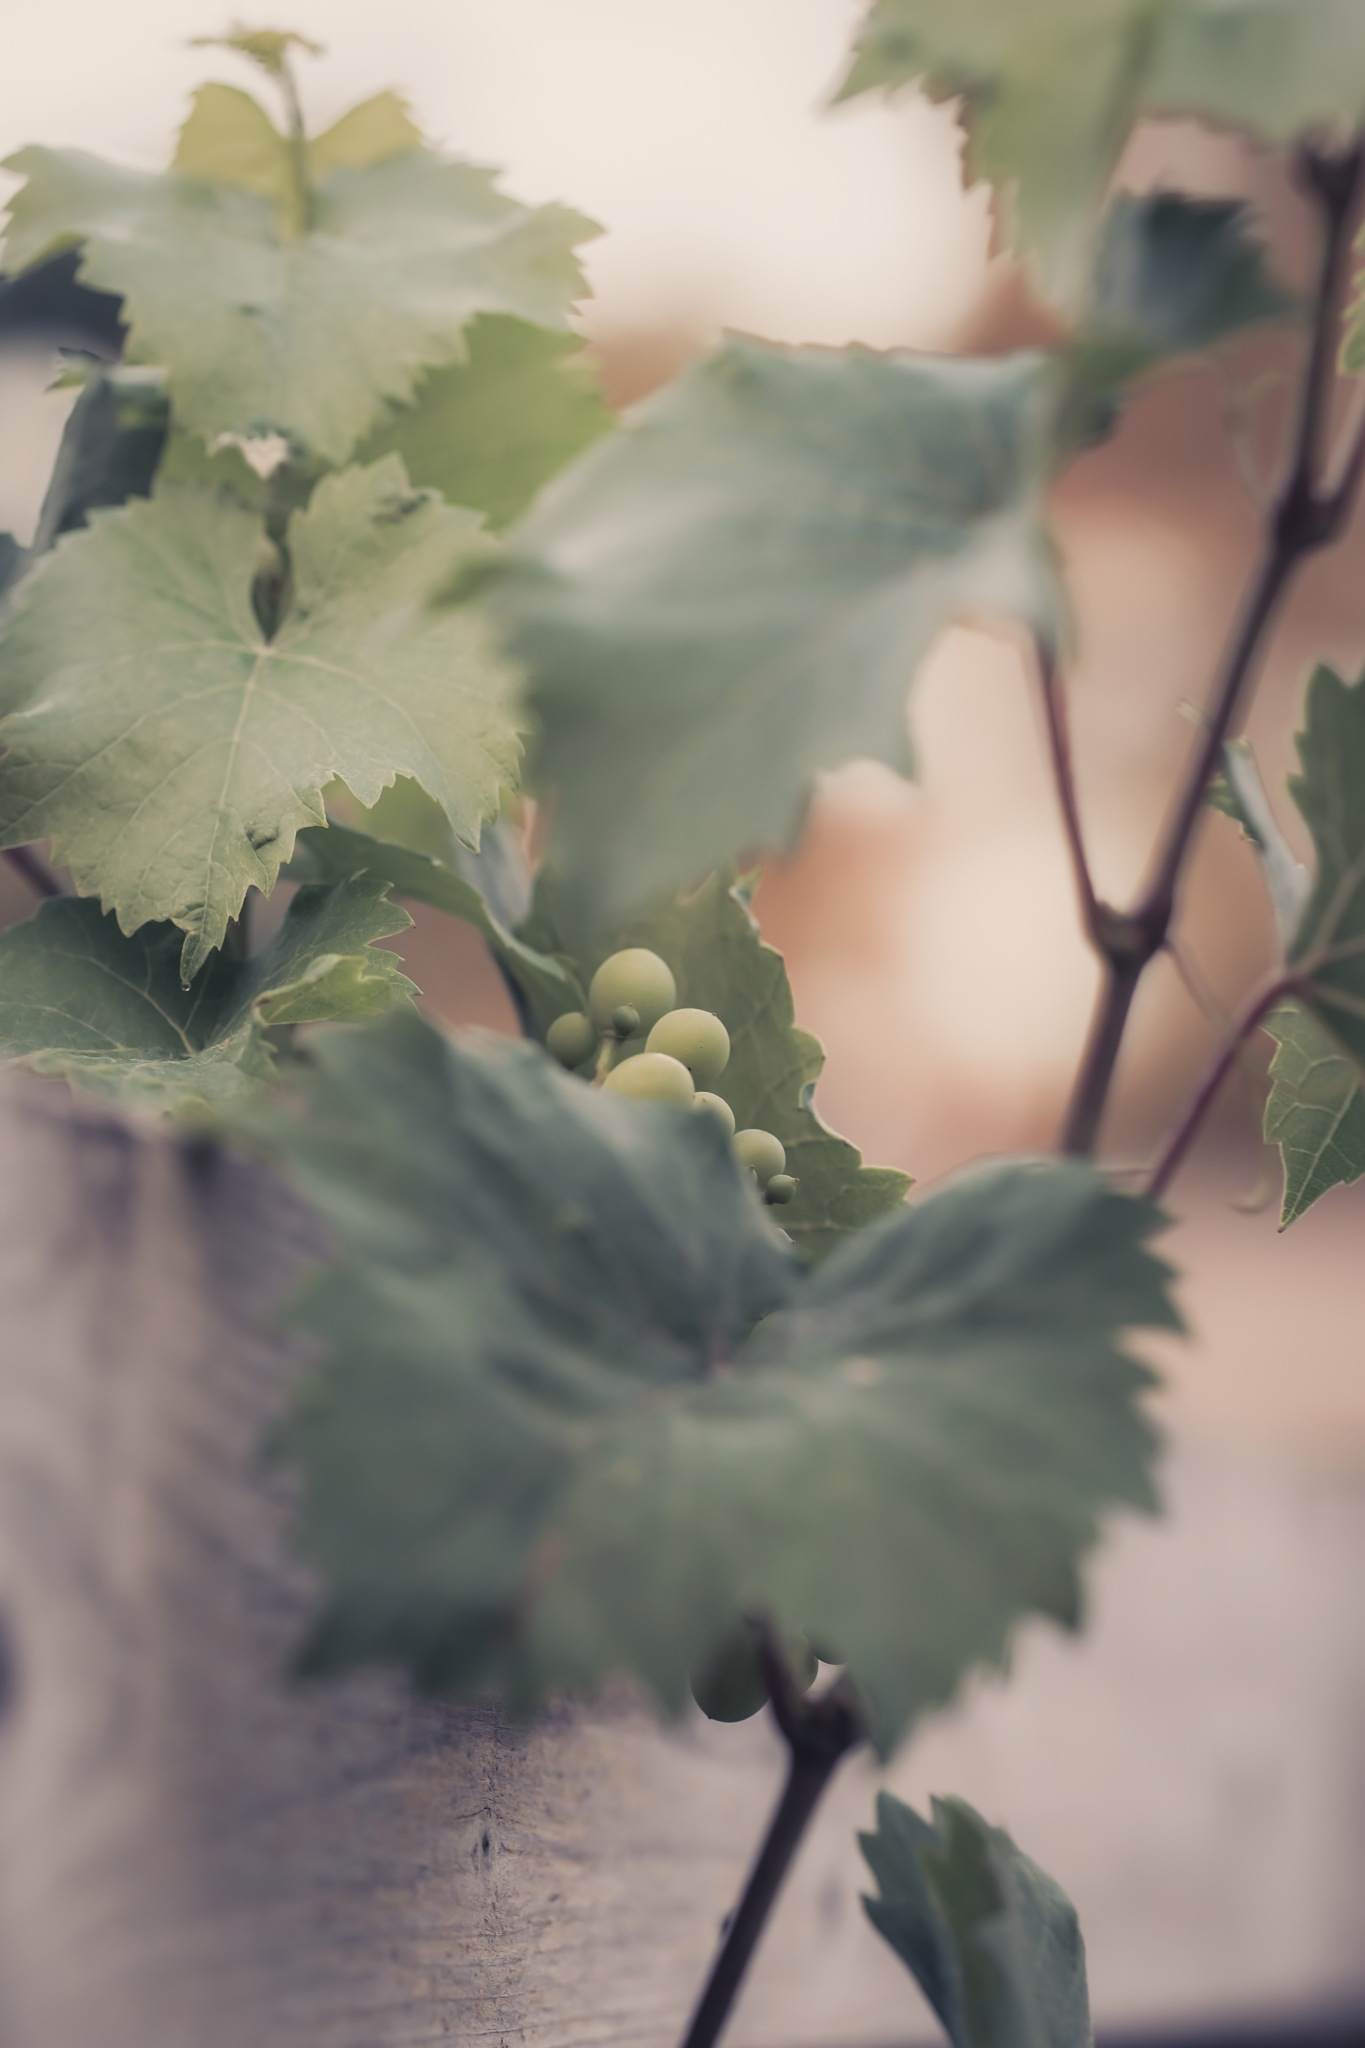 Grapes to be by MirrorlessFocus